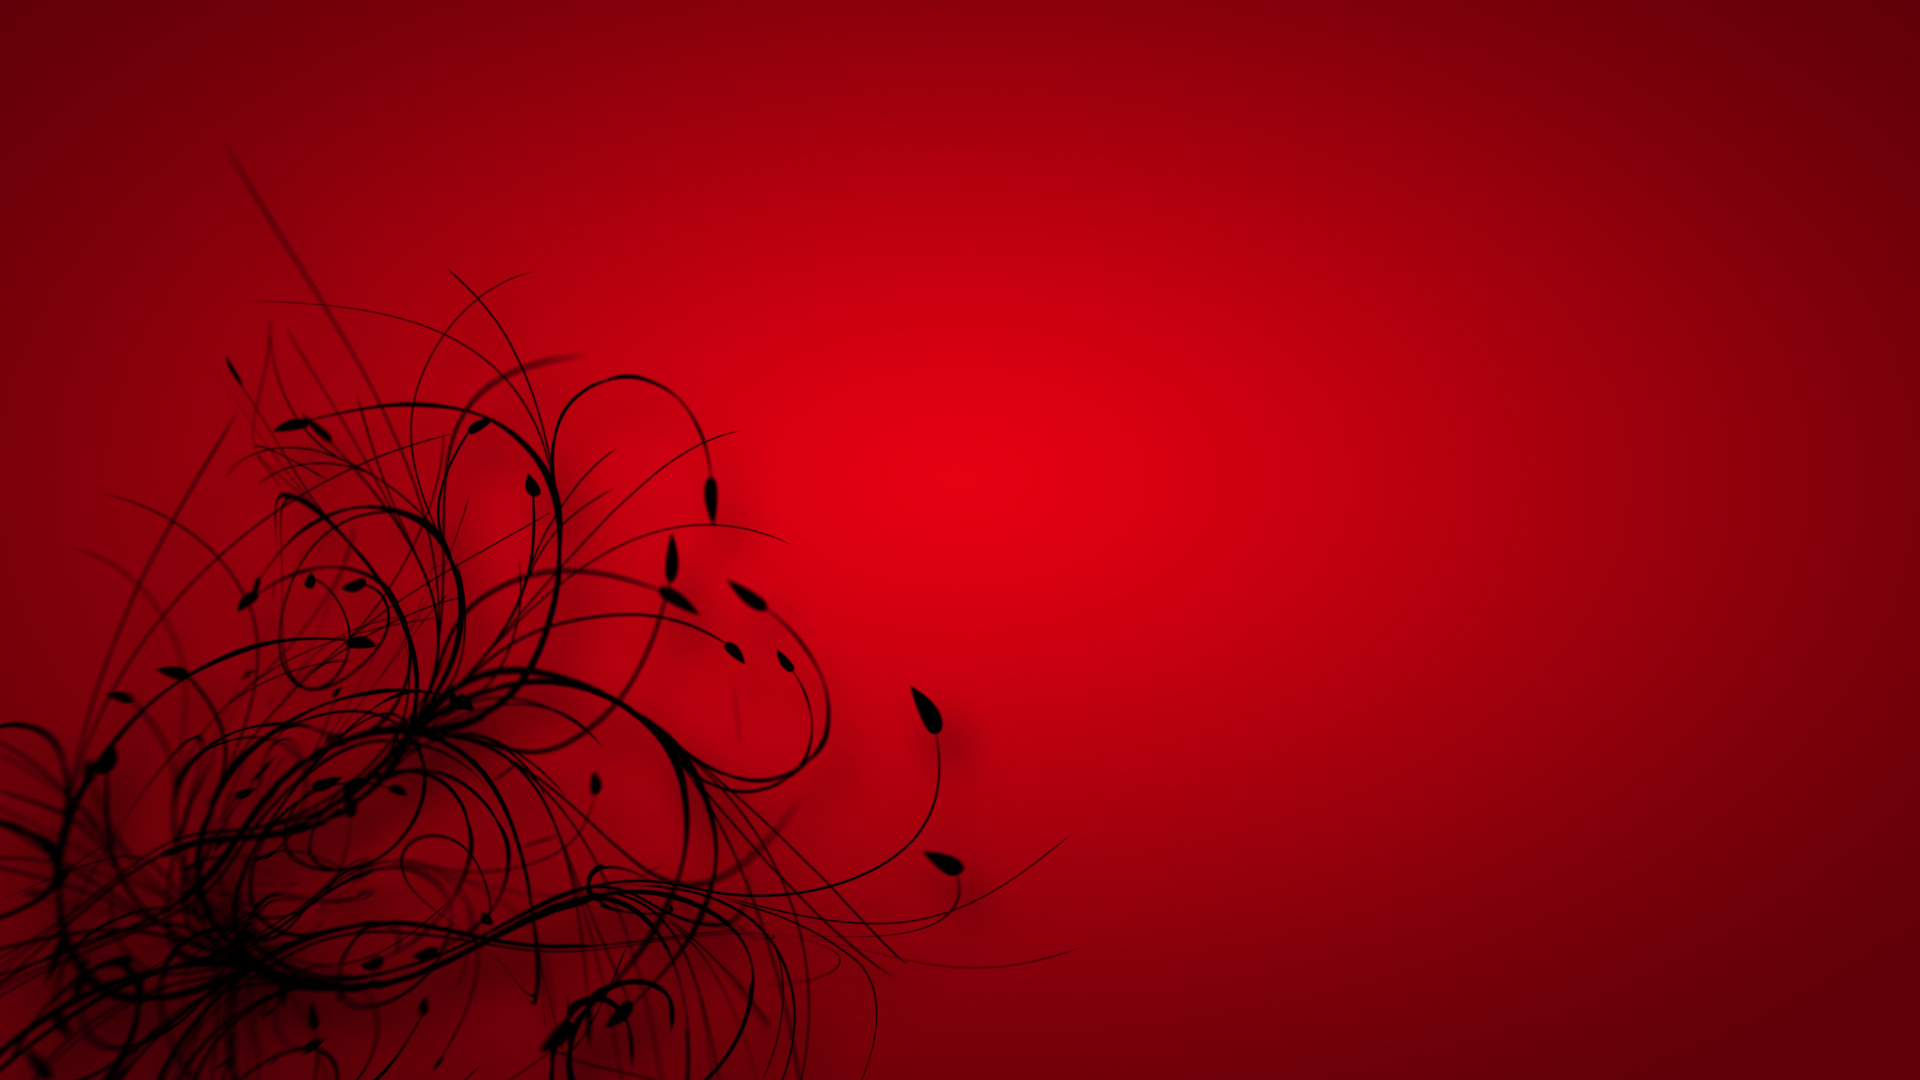 Red Black Abstract Wallpaper 1920x1080